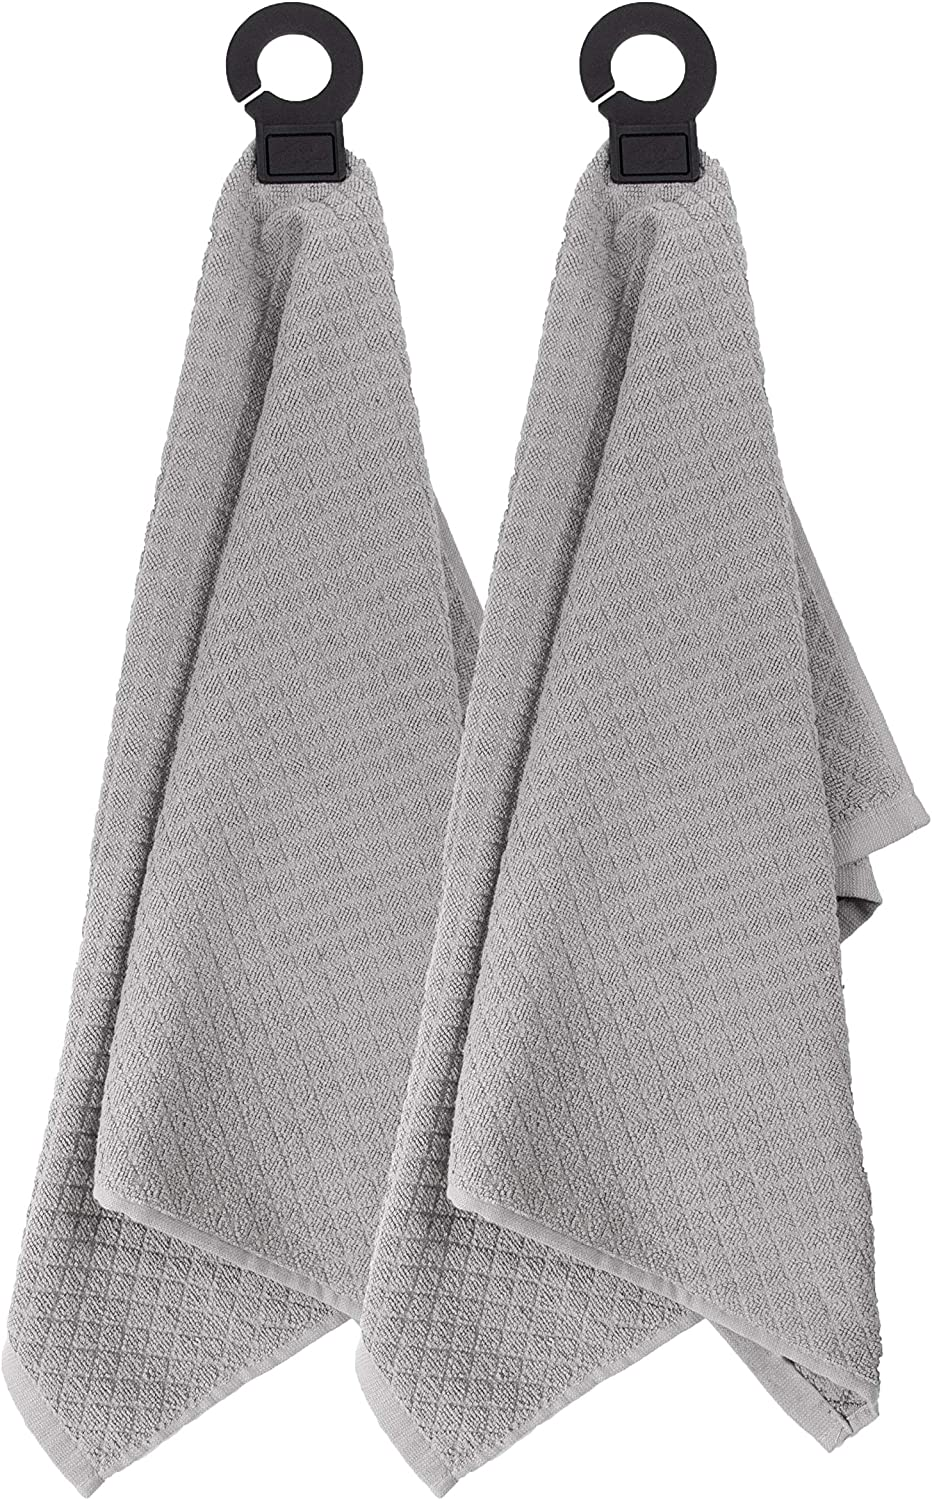 "Ritz Hook and Hang Towel with Permanent Rubber Hook for Kitchen, Bathroom, Mudroom, Laundry Room, Extra-Large, 18"" X 28"", Machine Washable, 2 Pack, Titanium"